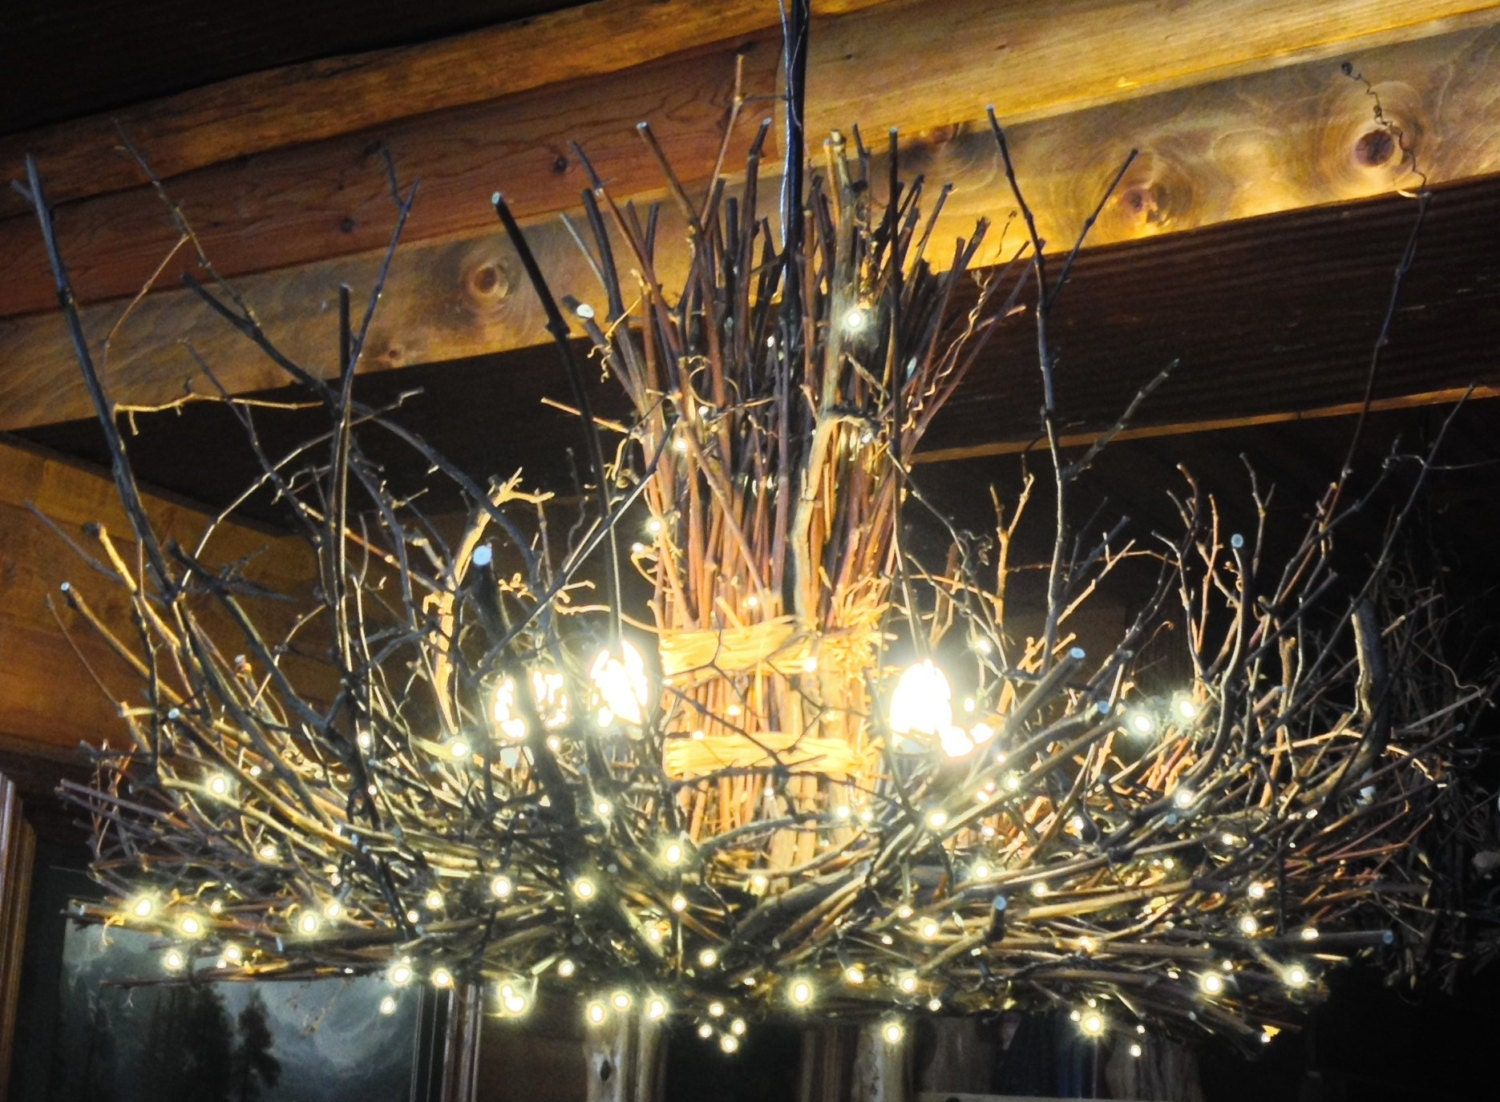 The appalachian rustic outdoor chandelier 5 candle zoom arubaitofo Gallery